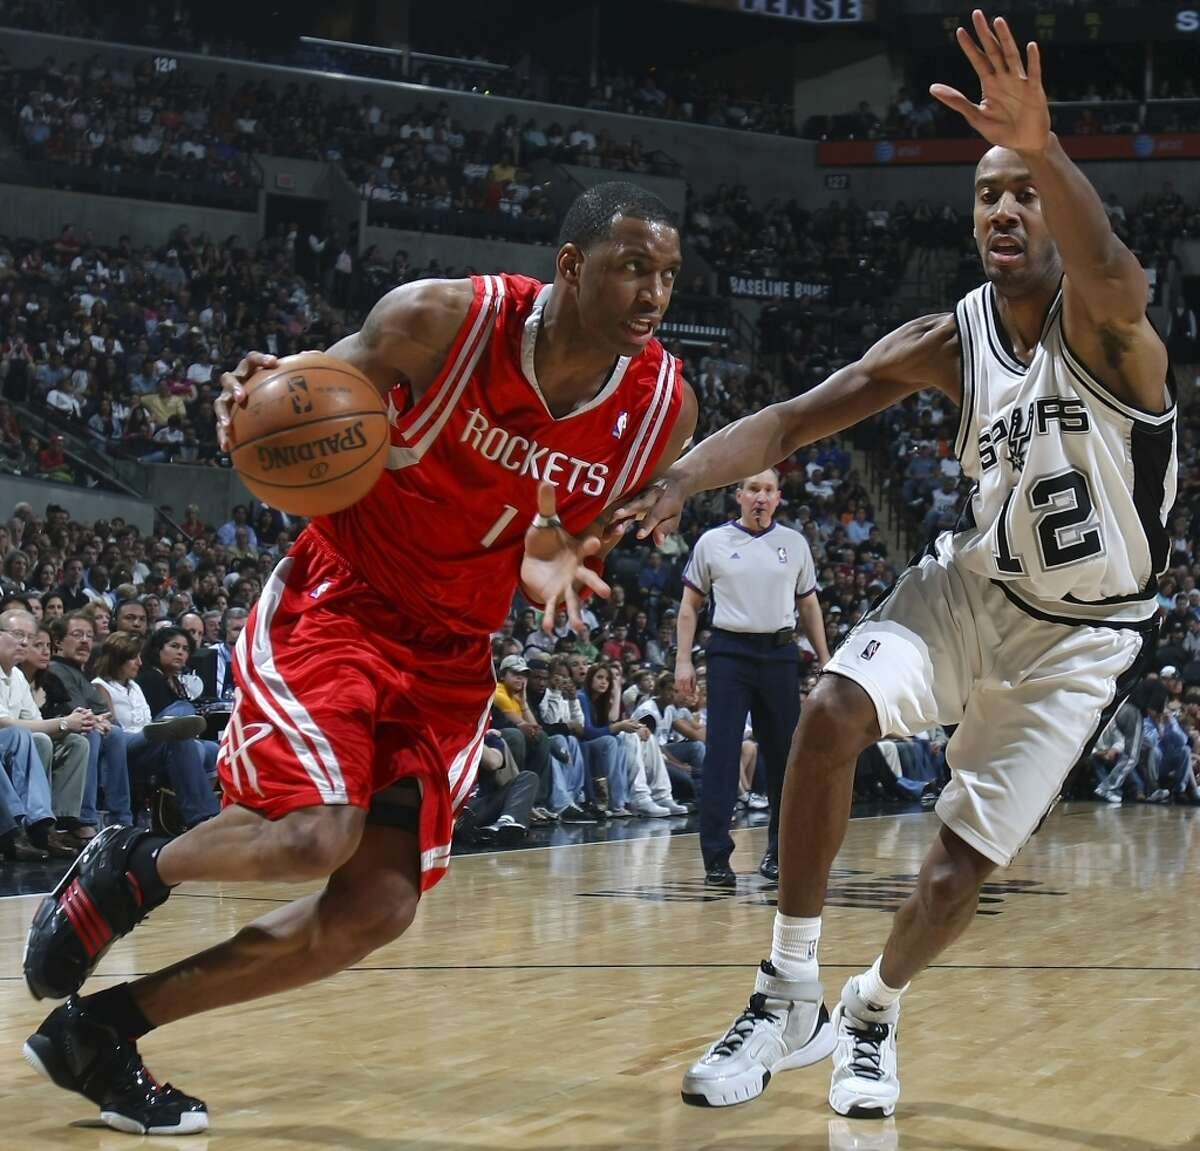 The Houston Rockets\' Tracy McGrady looks for room around the Spurs\' Bruce Bowen during the first half on March 30, 2008, at the AT&T Center.